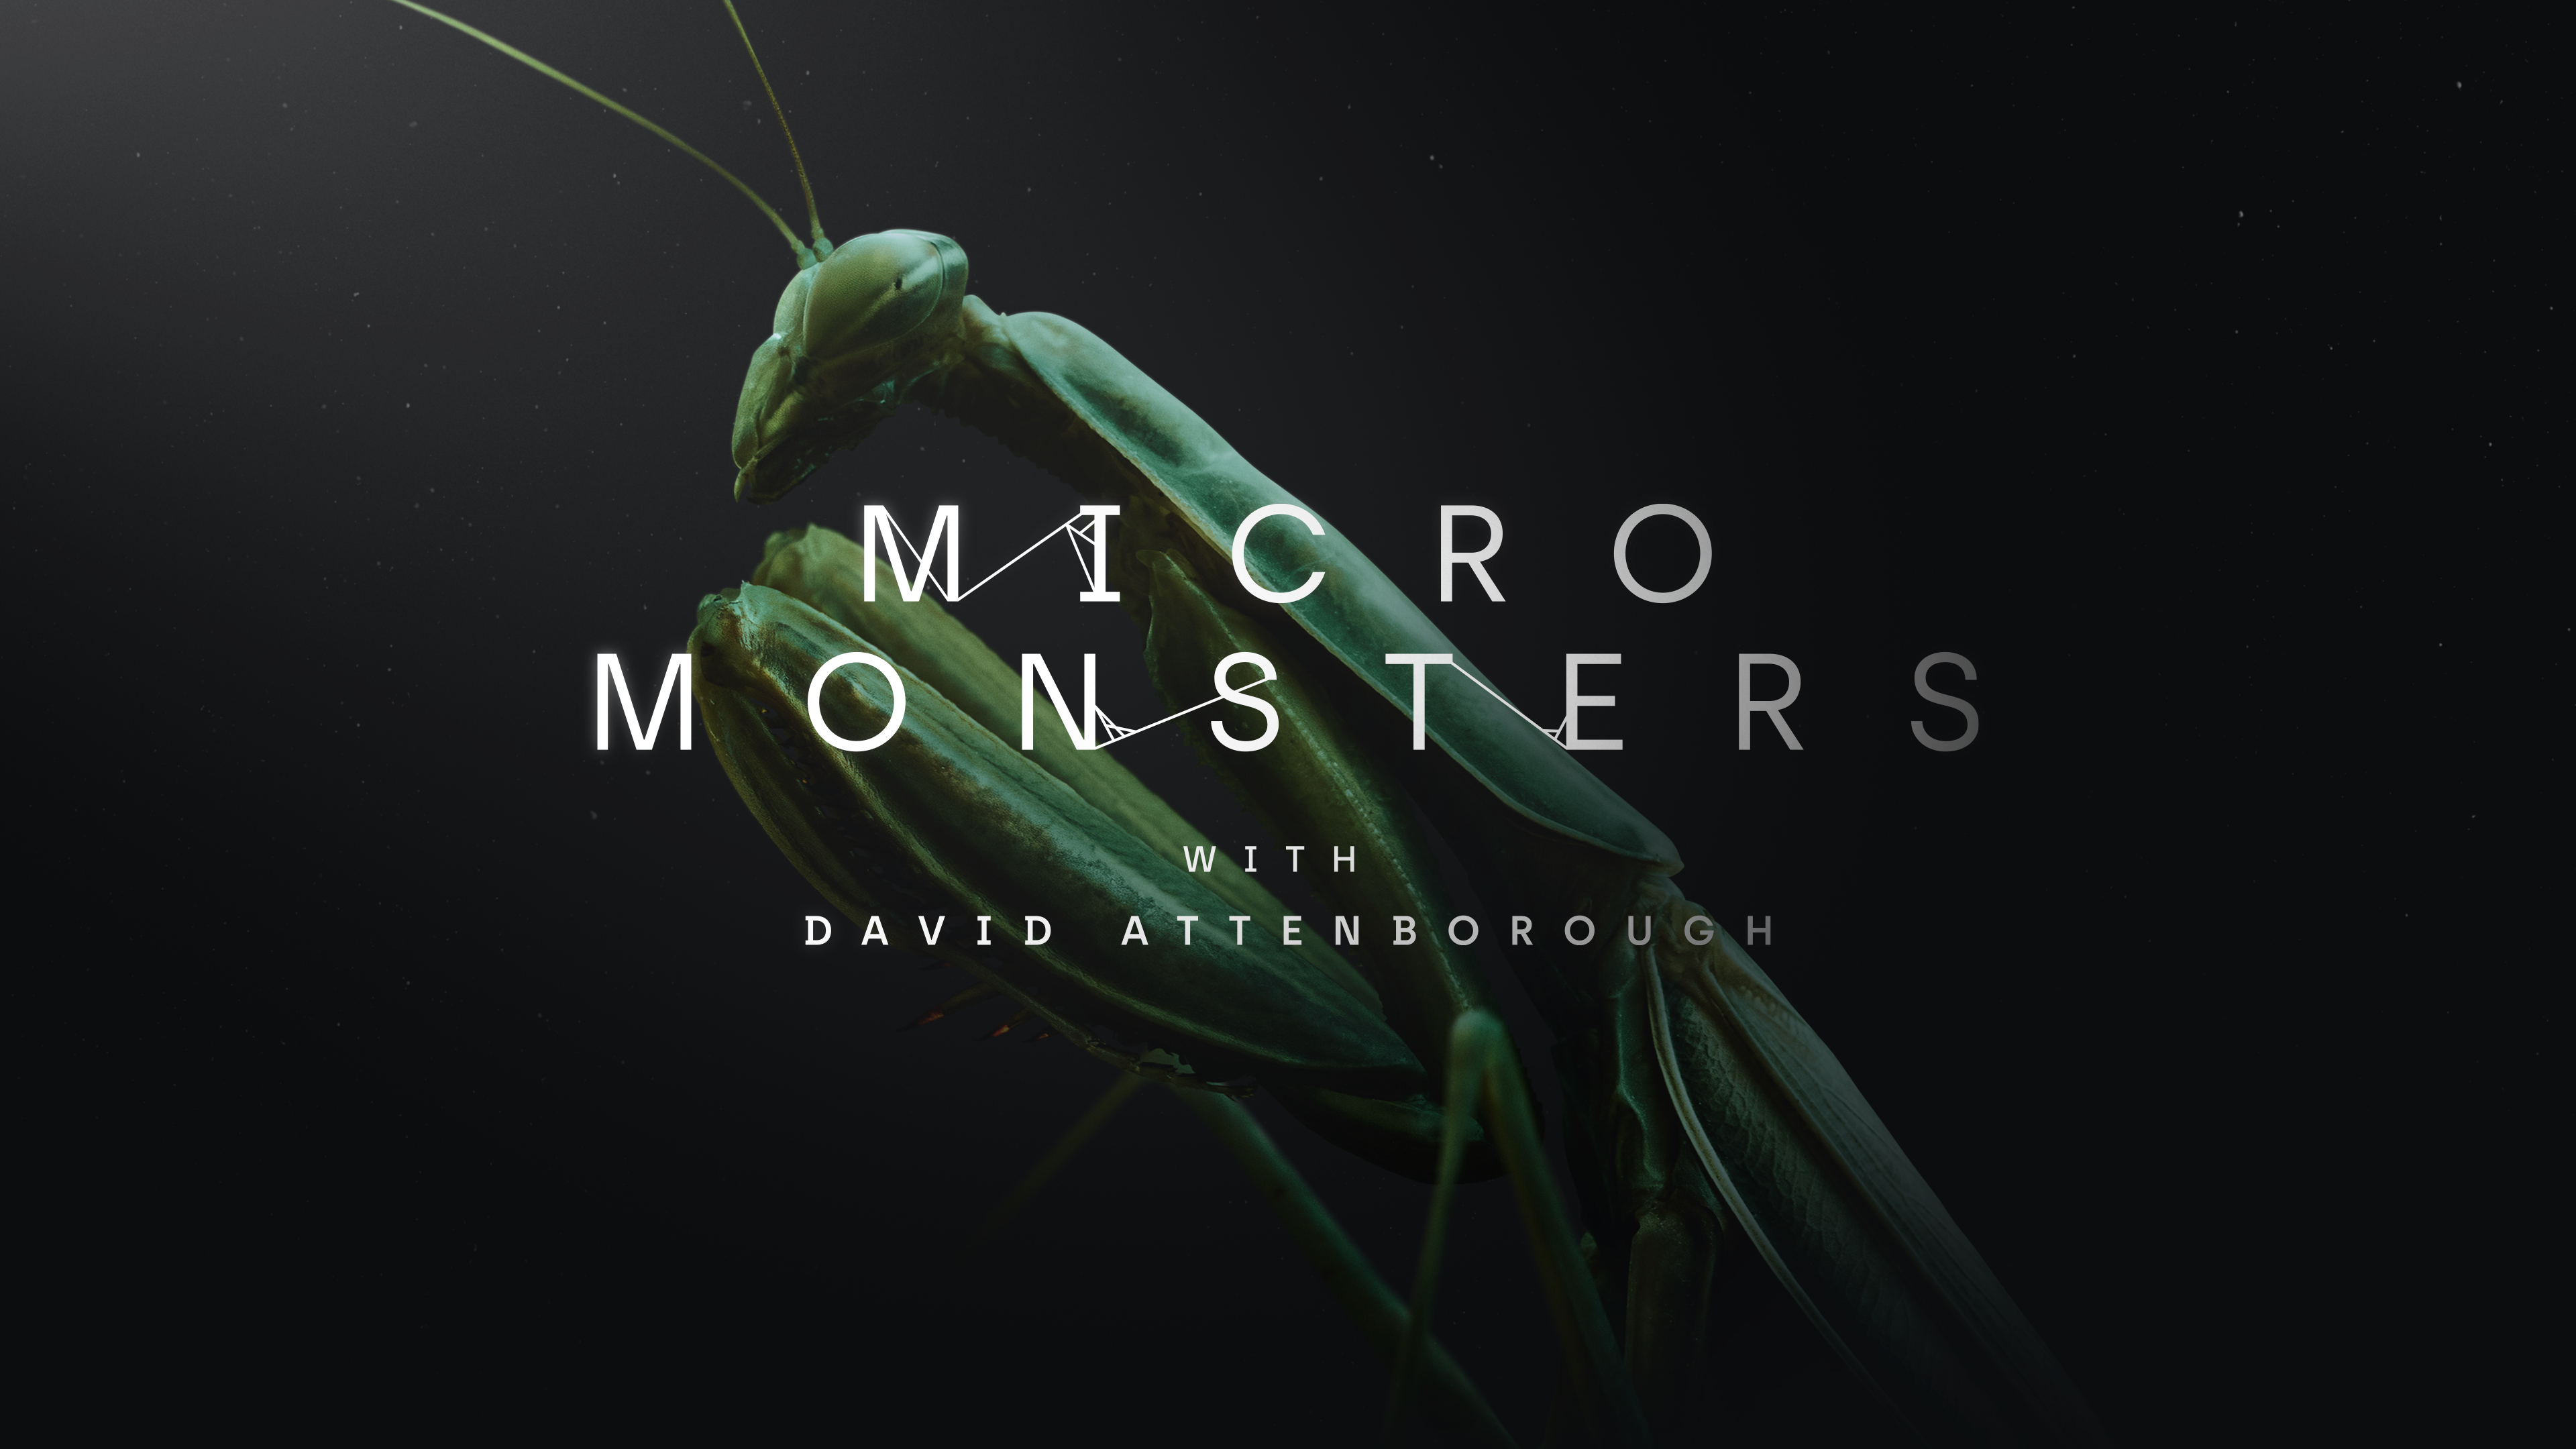 Micro Monsters with David Attenborough